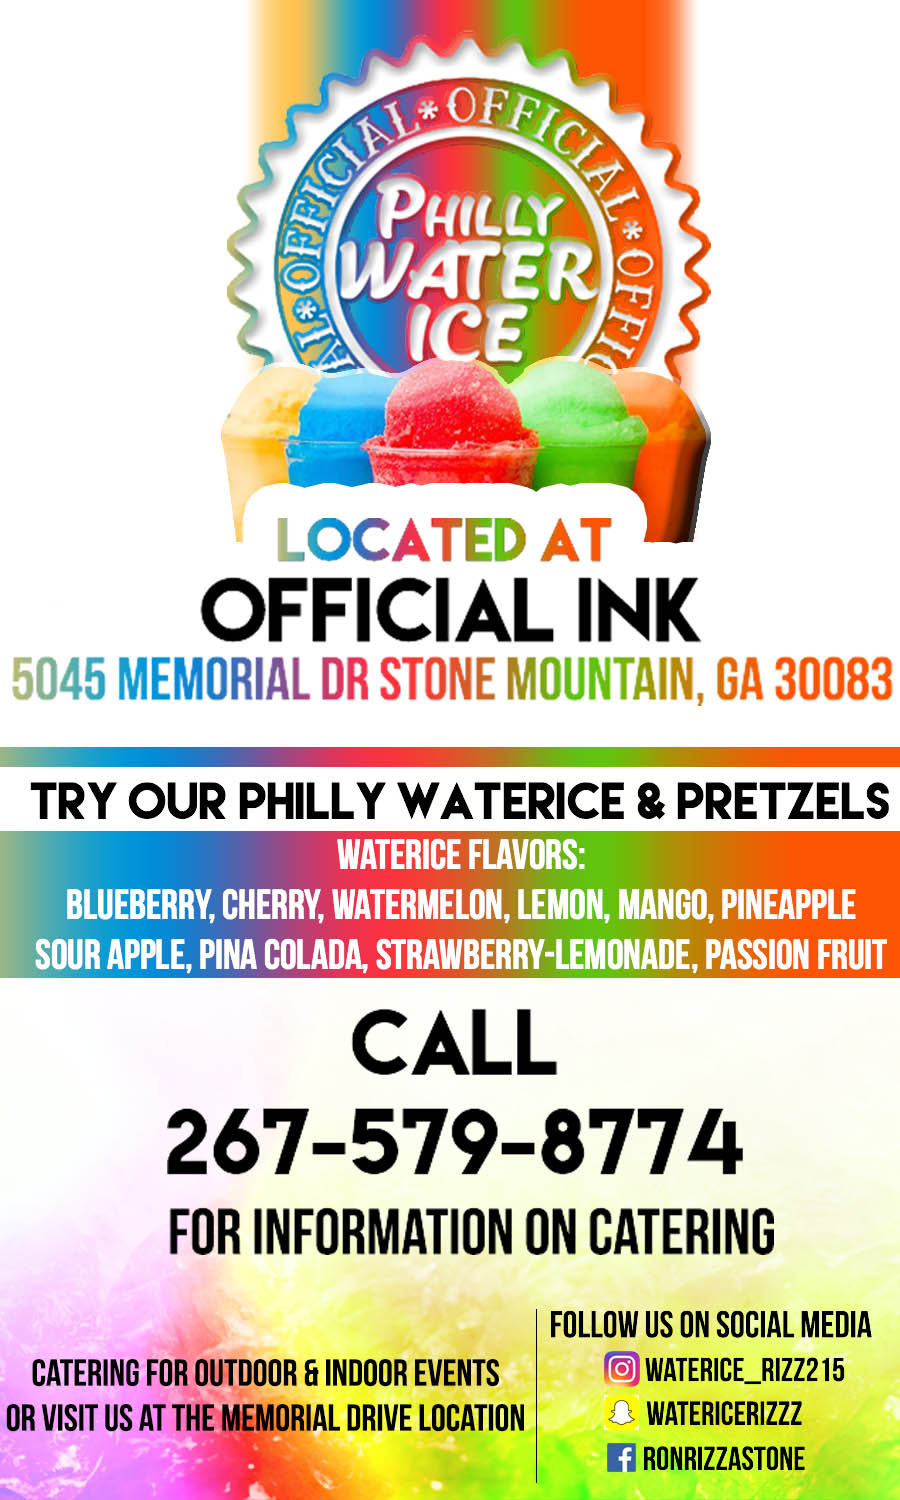 Rex Water Ice Flyer300dpi.jpg